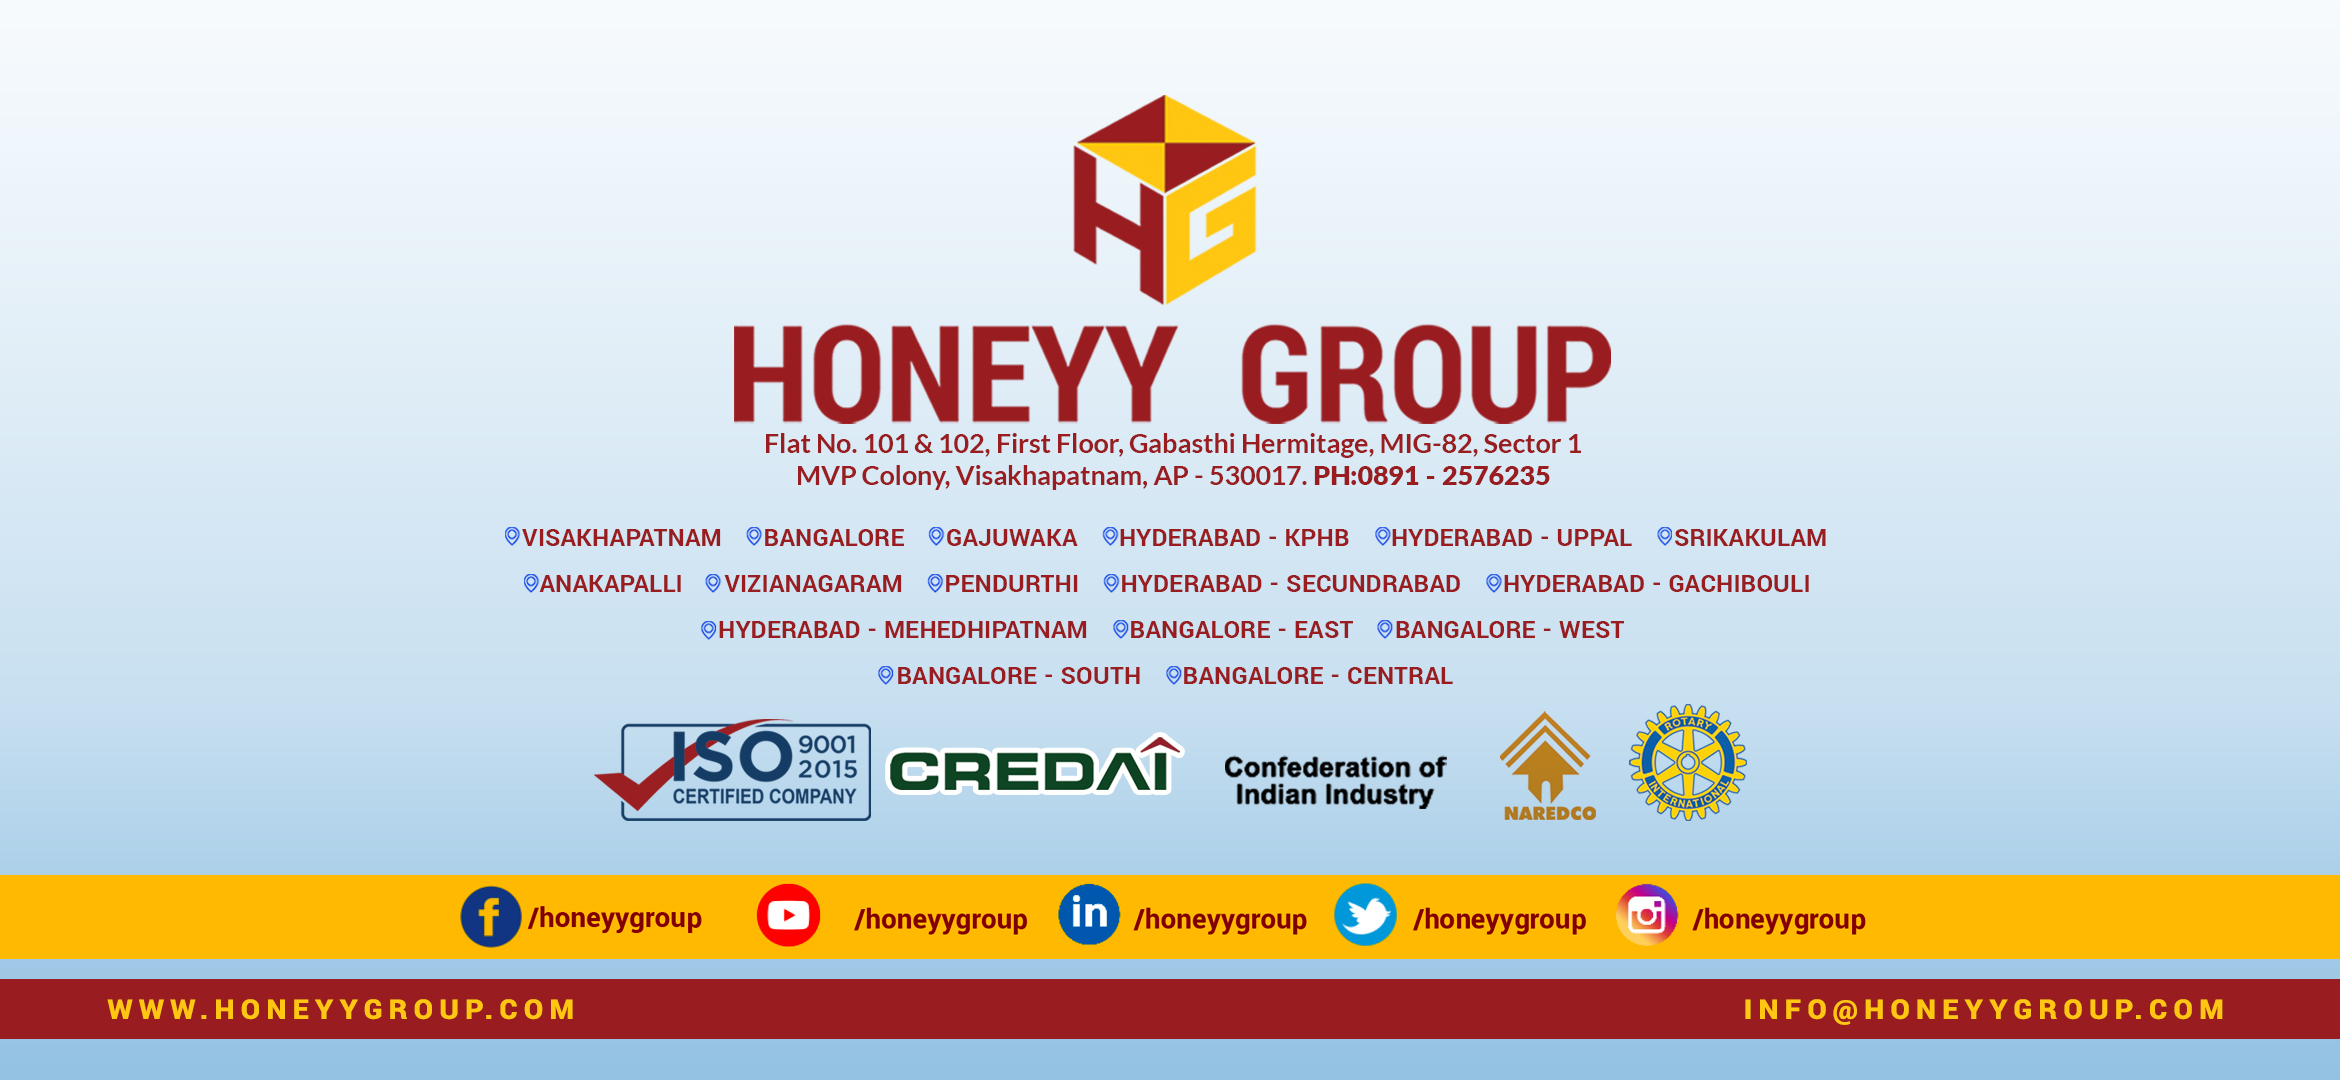 HoneyyGroup – Real Estate Consulting Services in Visakhapatnam, Hyderabad, Bangalore